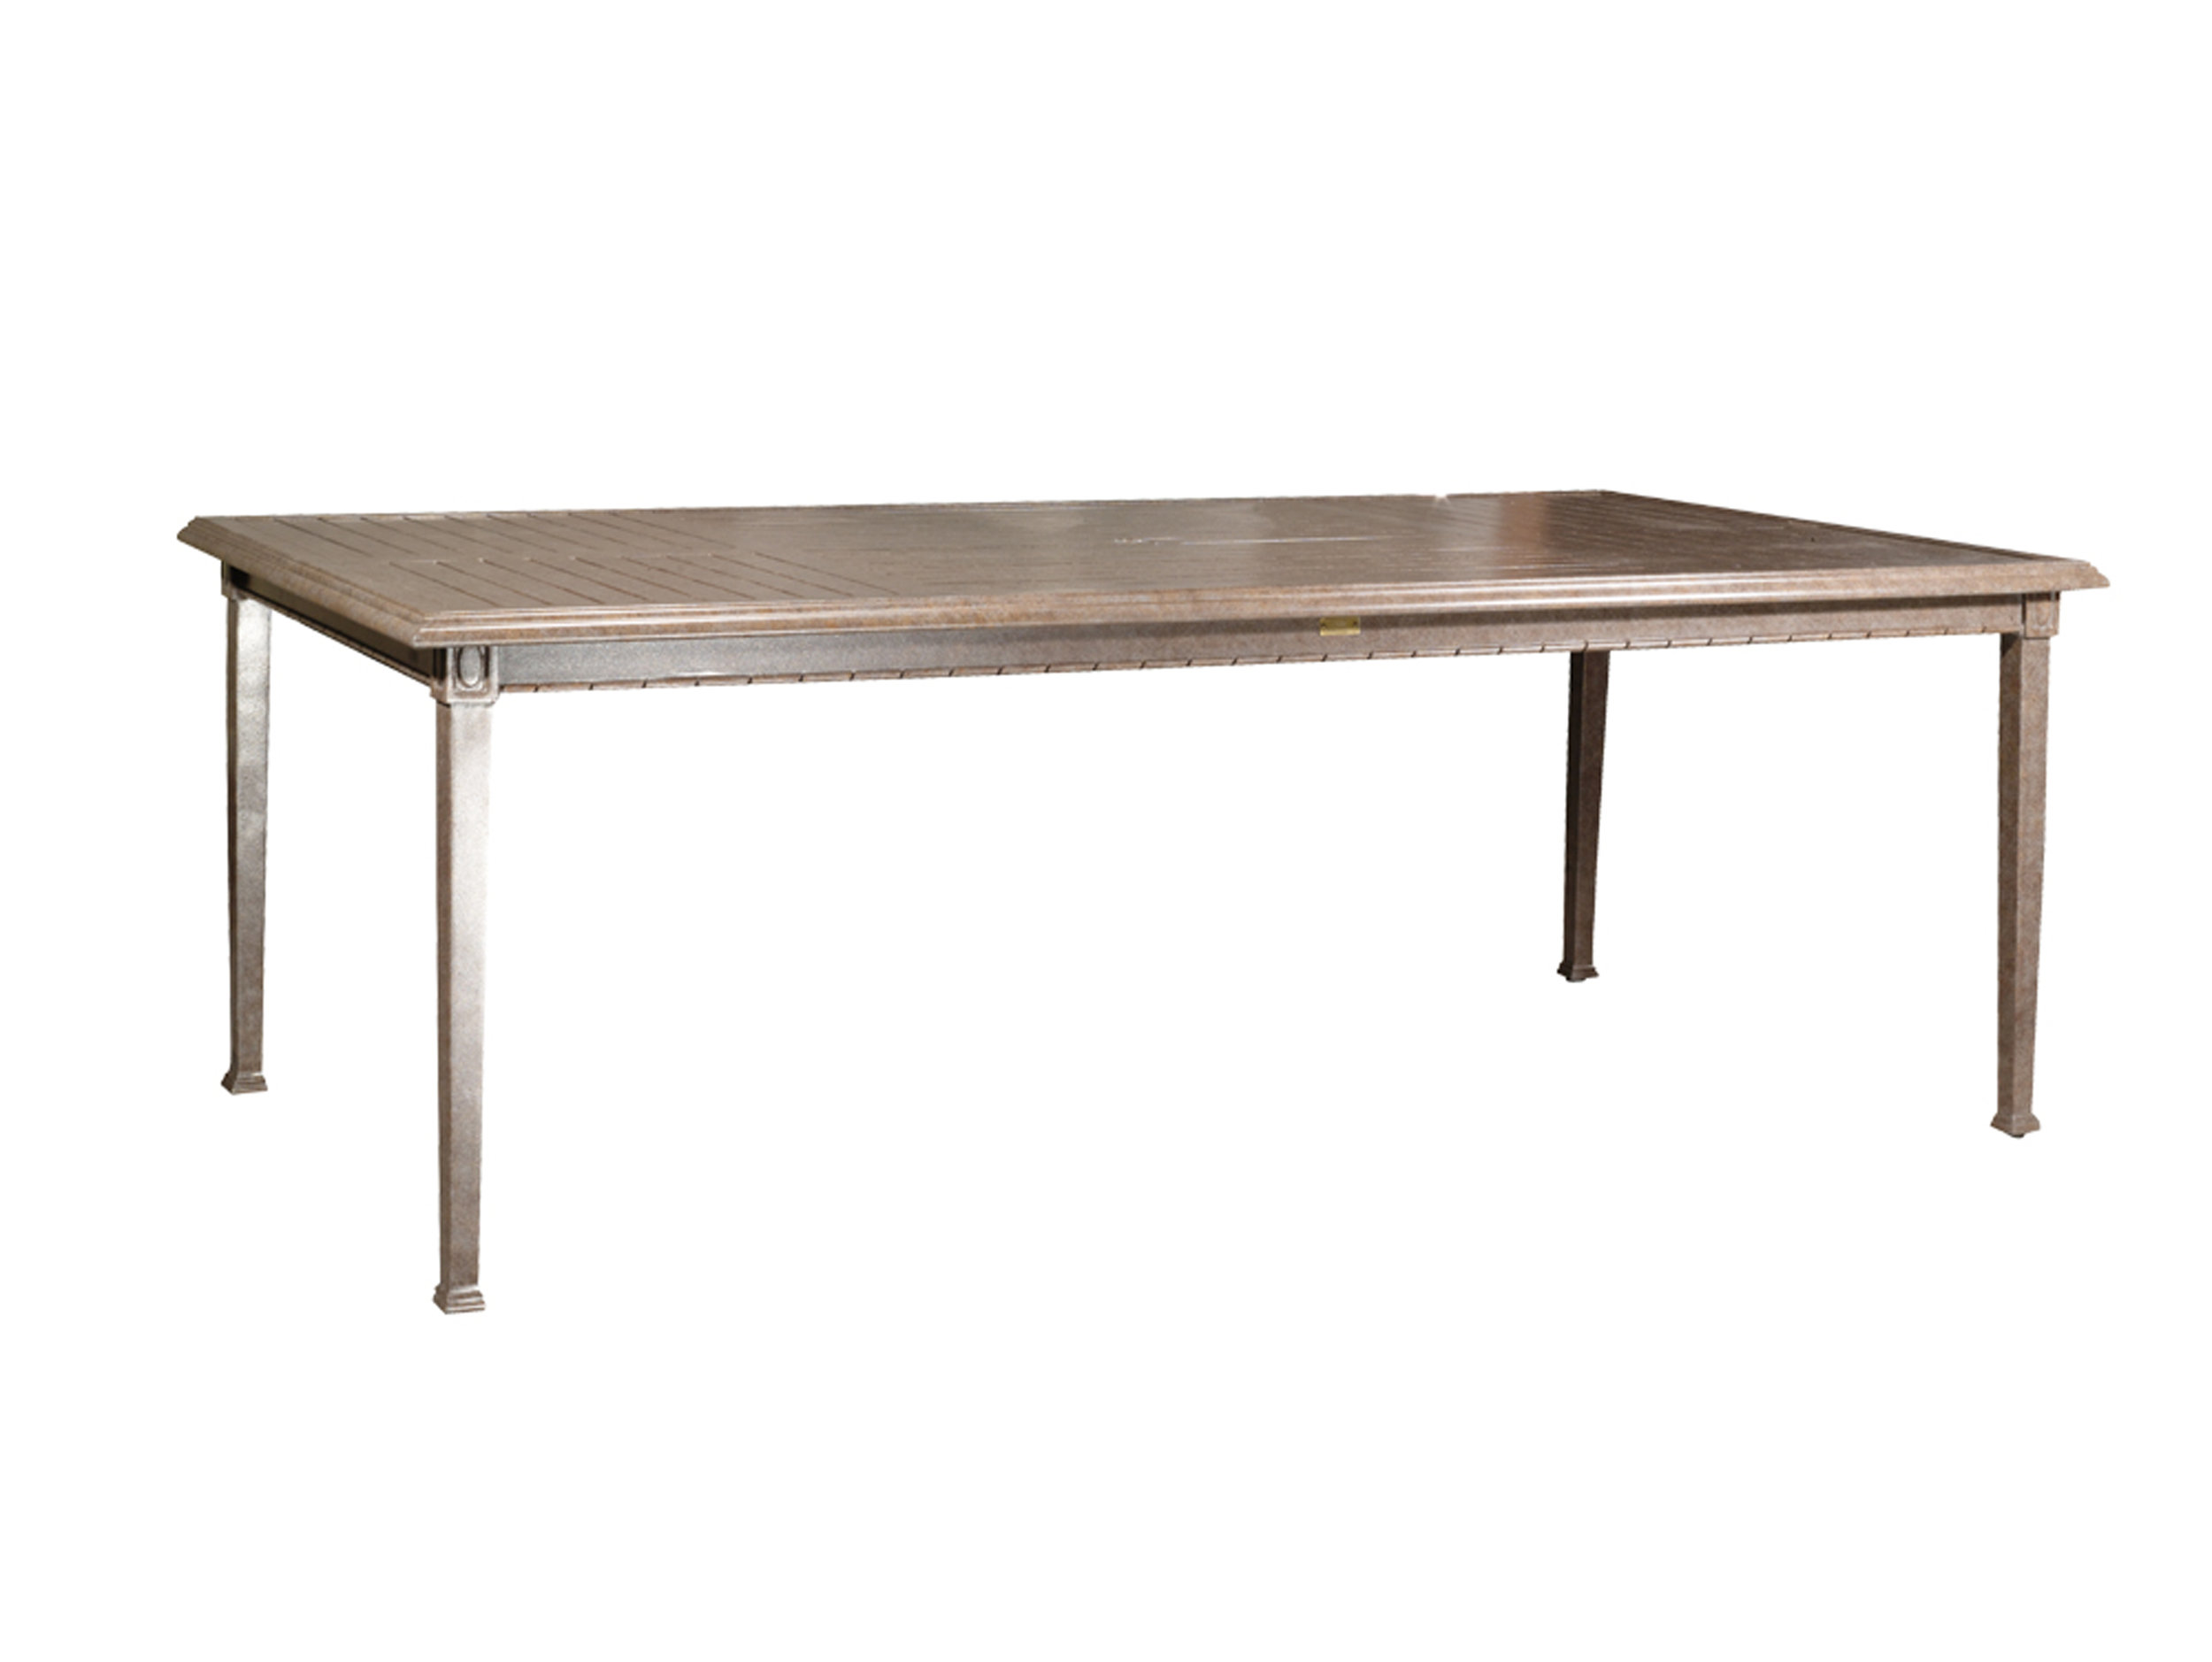 "972081 Newport 84"" Rect. Dining Table   44.5"" x 84"" x 29"""